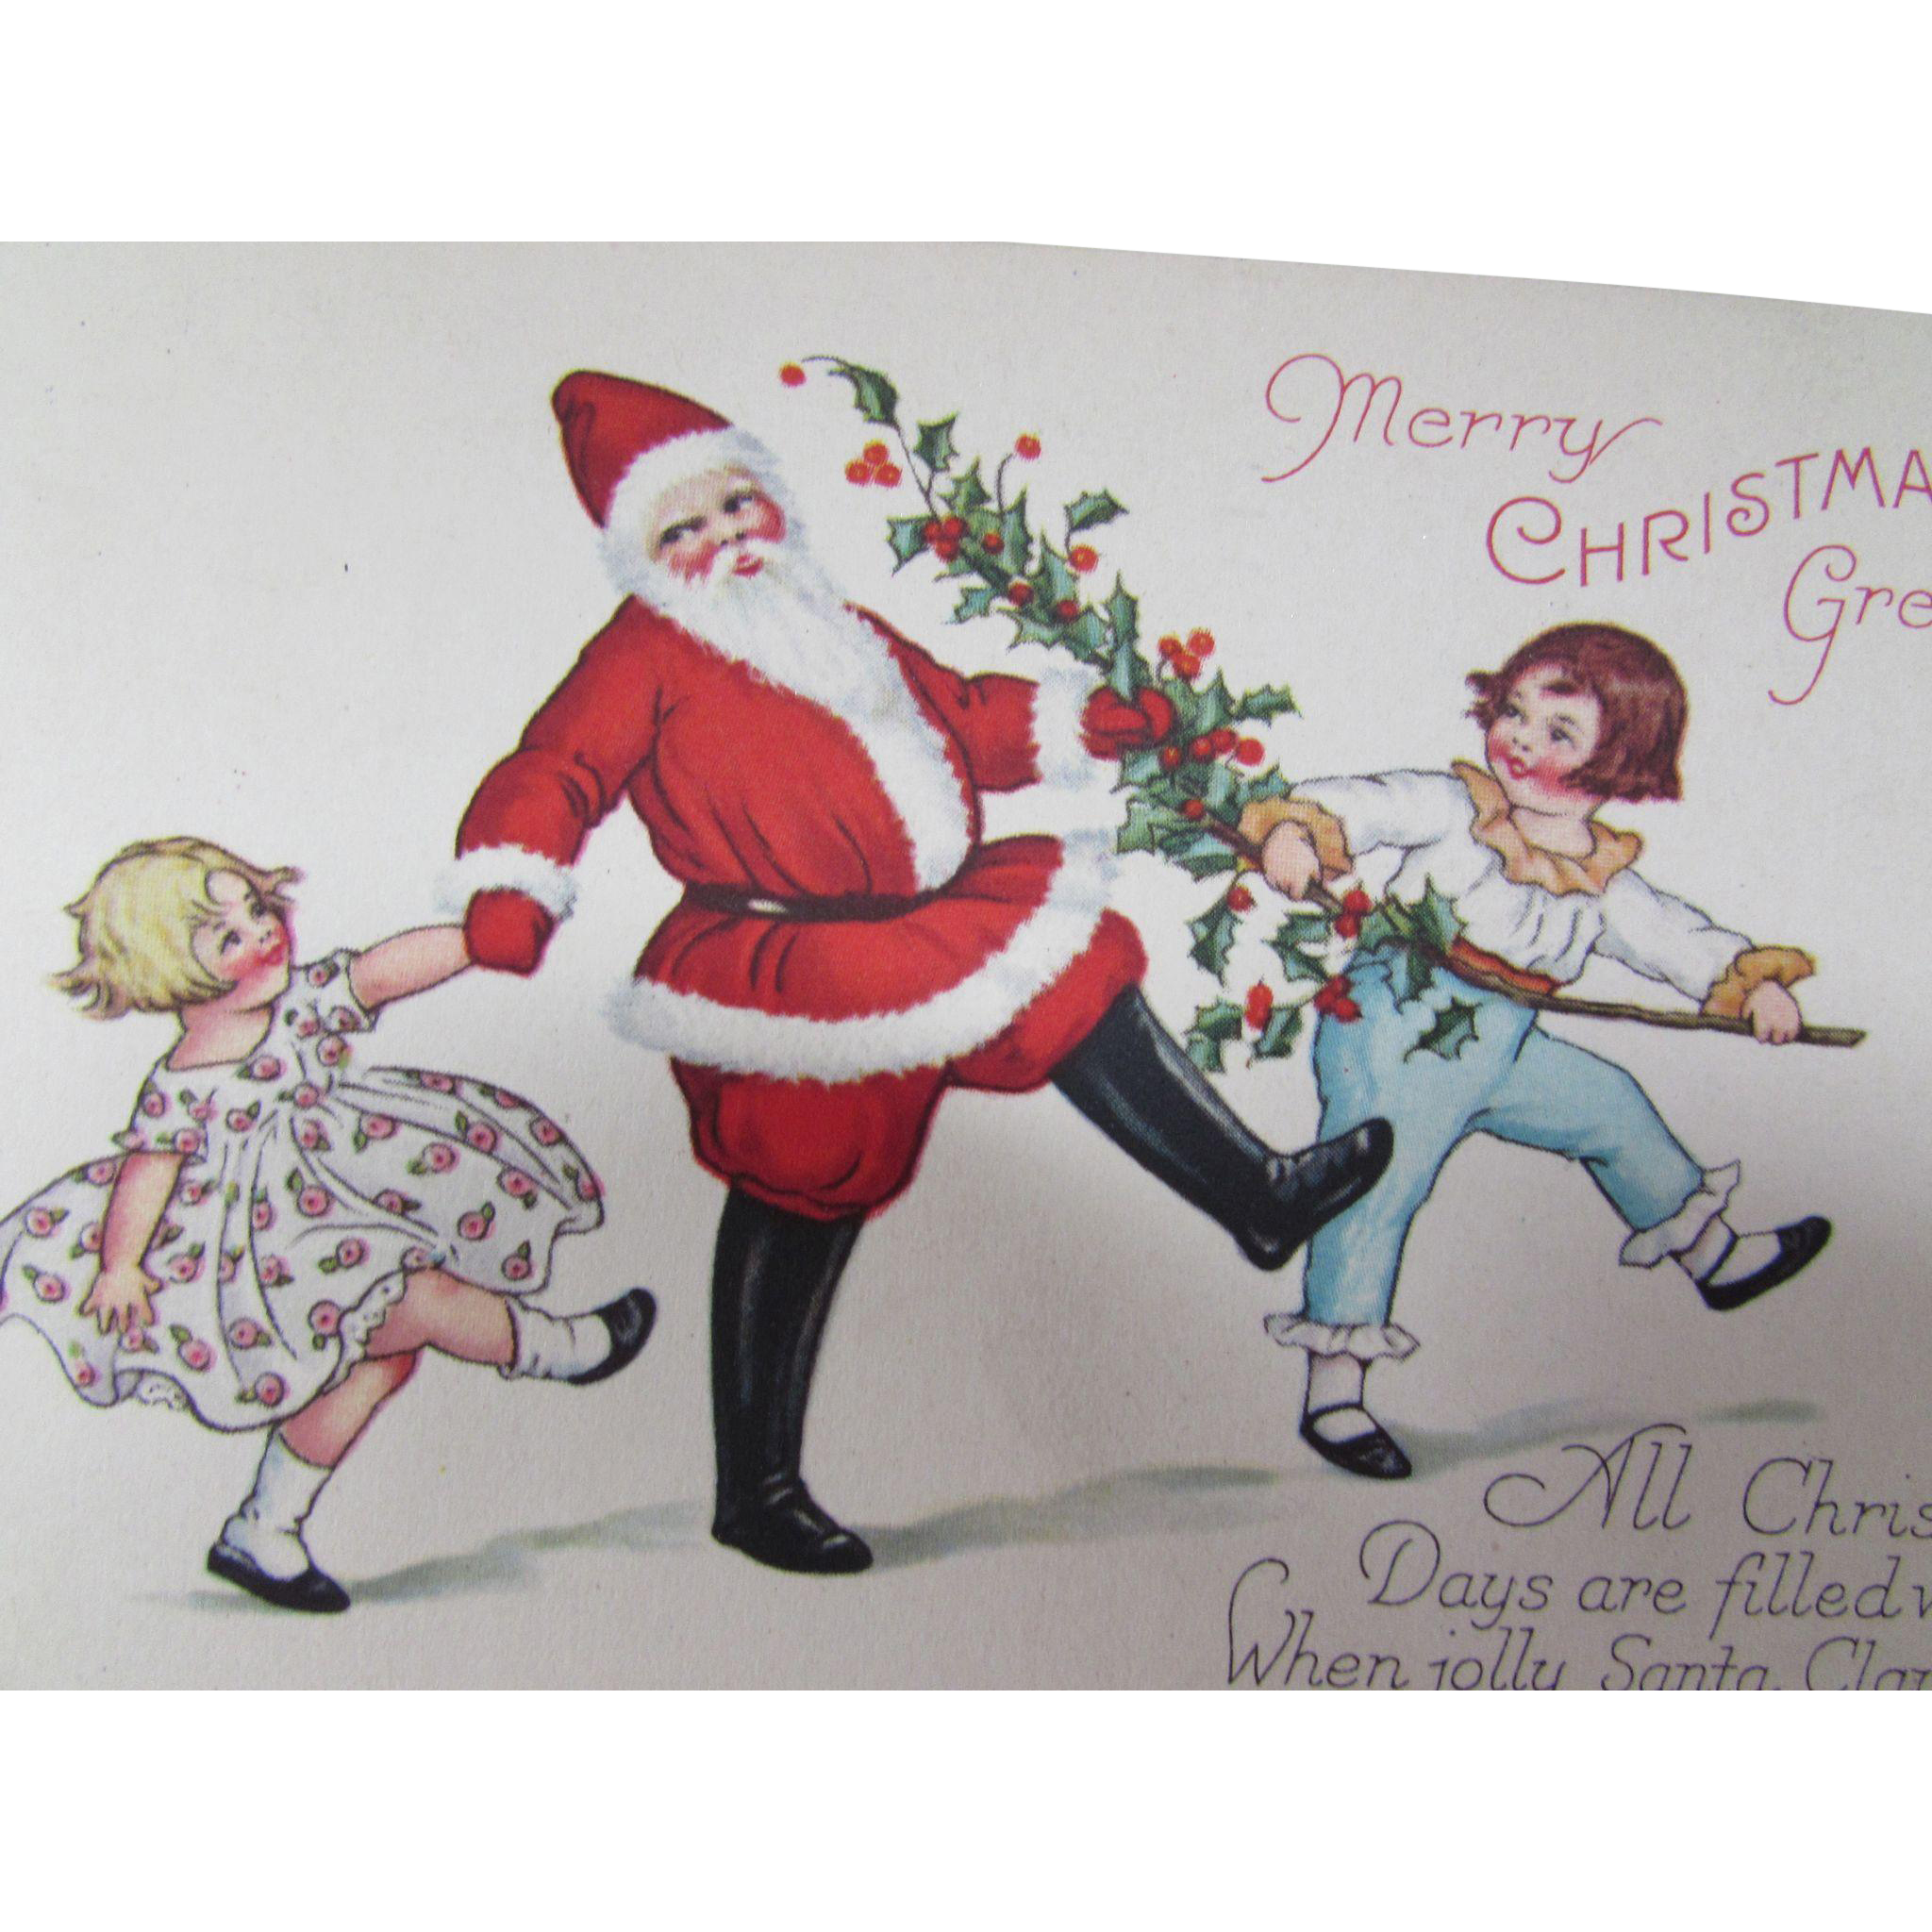 Santa Christmas Holiday Post Card 1929